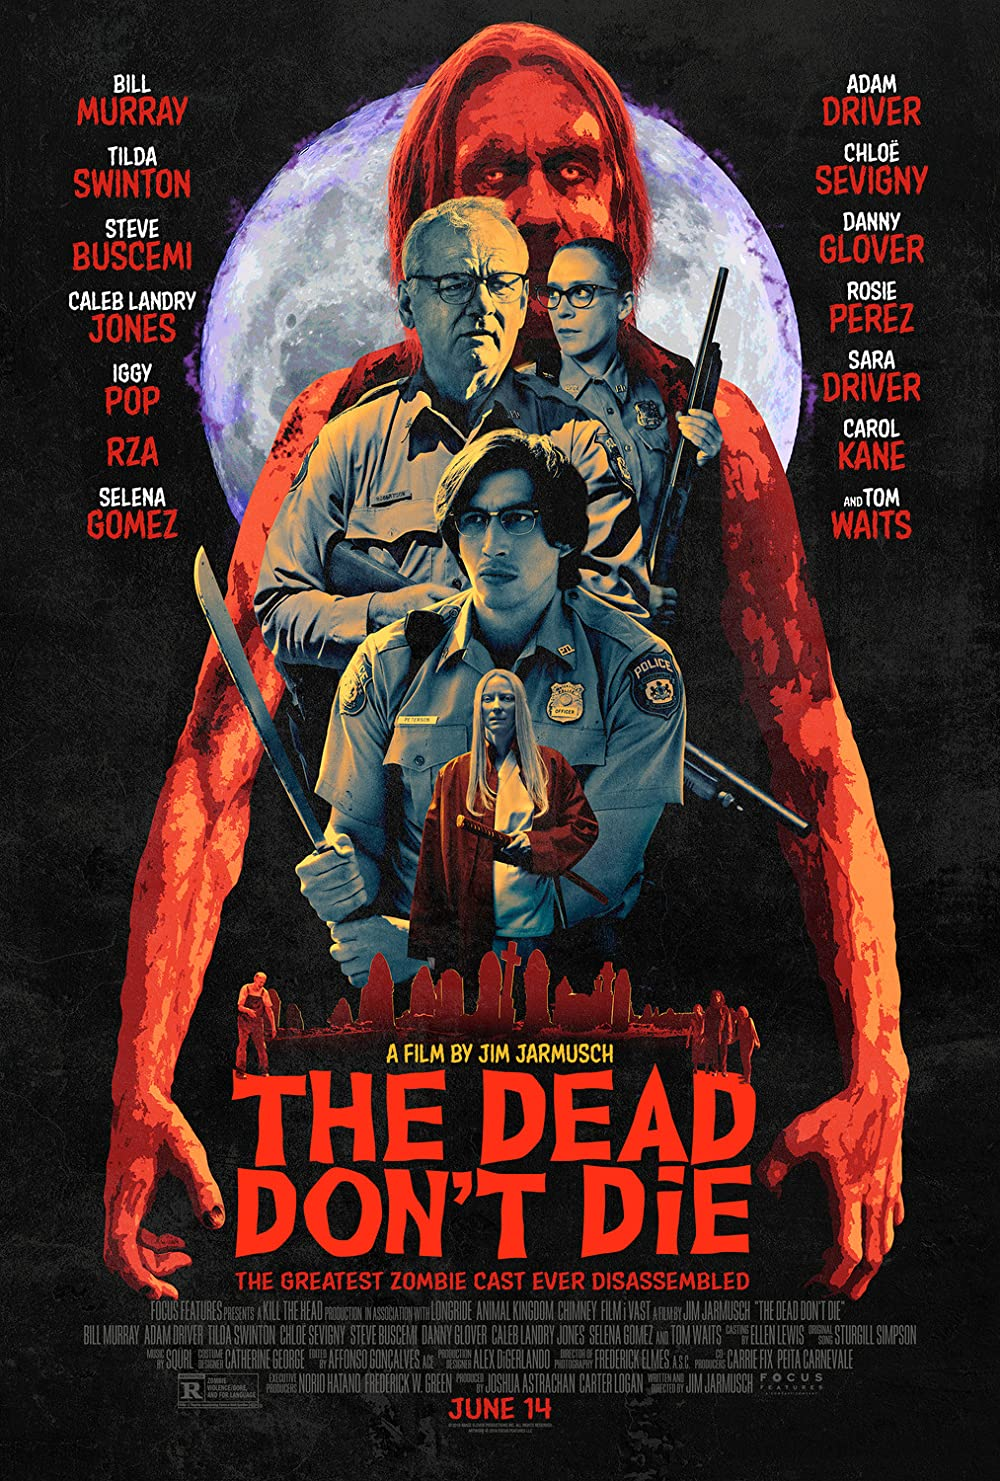 The Dead Dont Die 2019 Hindi ORG Dual Audio 1080p BluRay ESubs 1.8GB x264 AAC